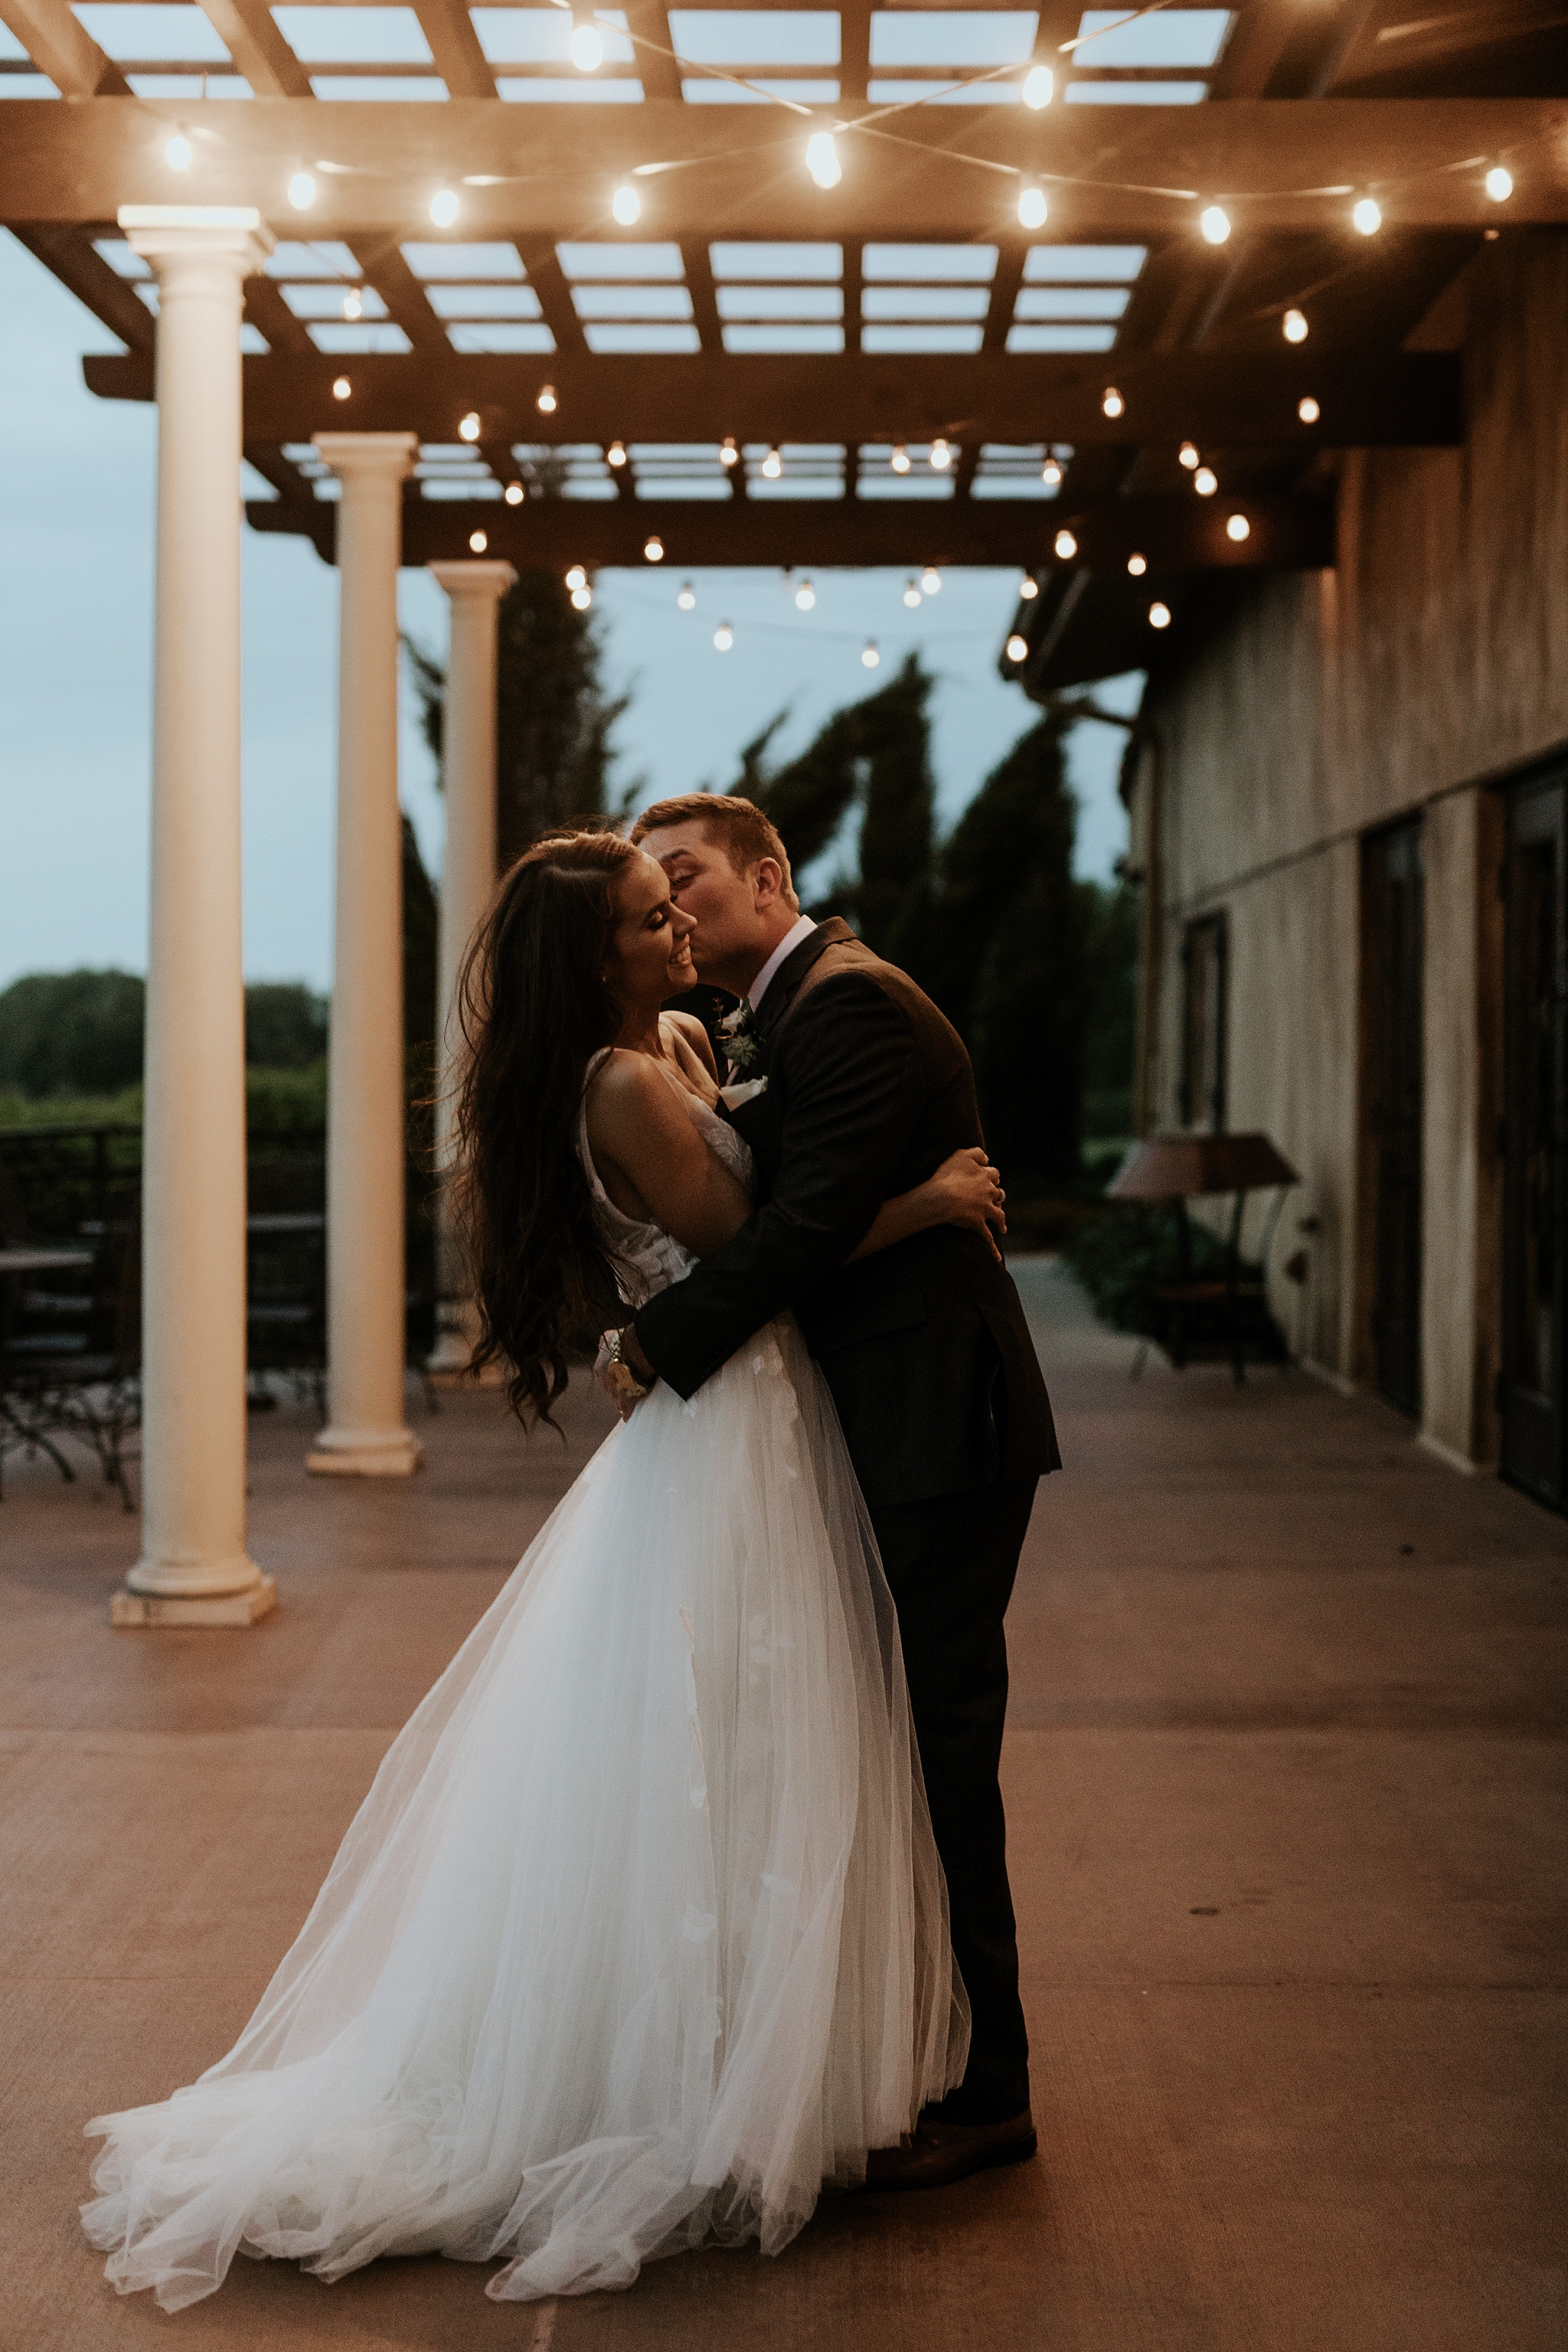 Italian Wedding at Bella Terre Vineyard - Trin Jensen Photography_0029.jpg